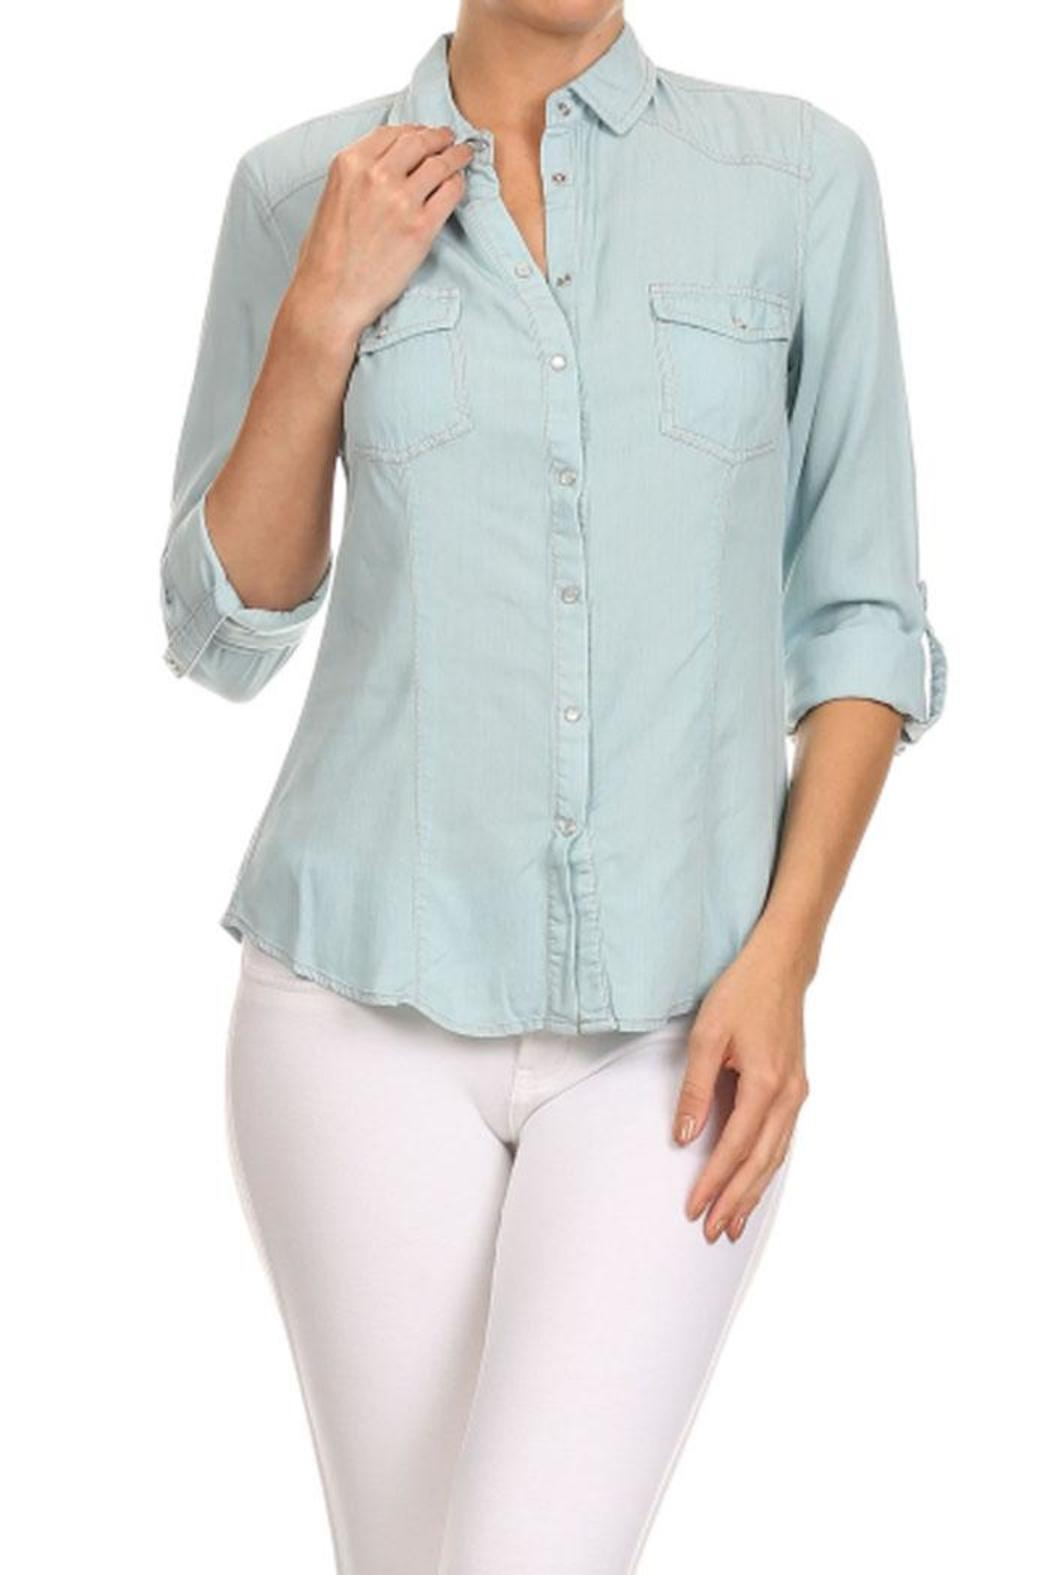 b95631c0949 Haute Monde Chambray Long Sleeve from Orange County by Maple ...